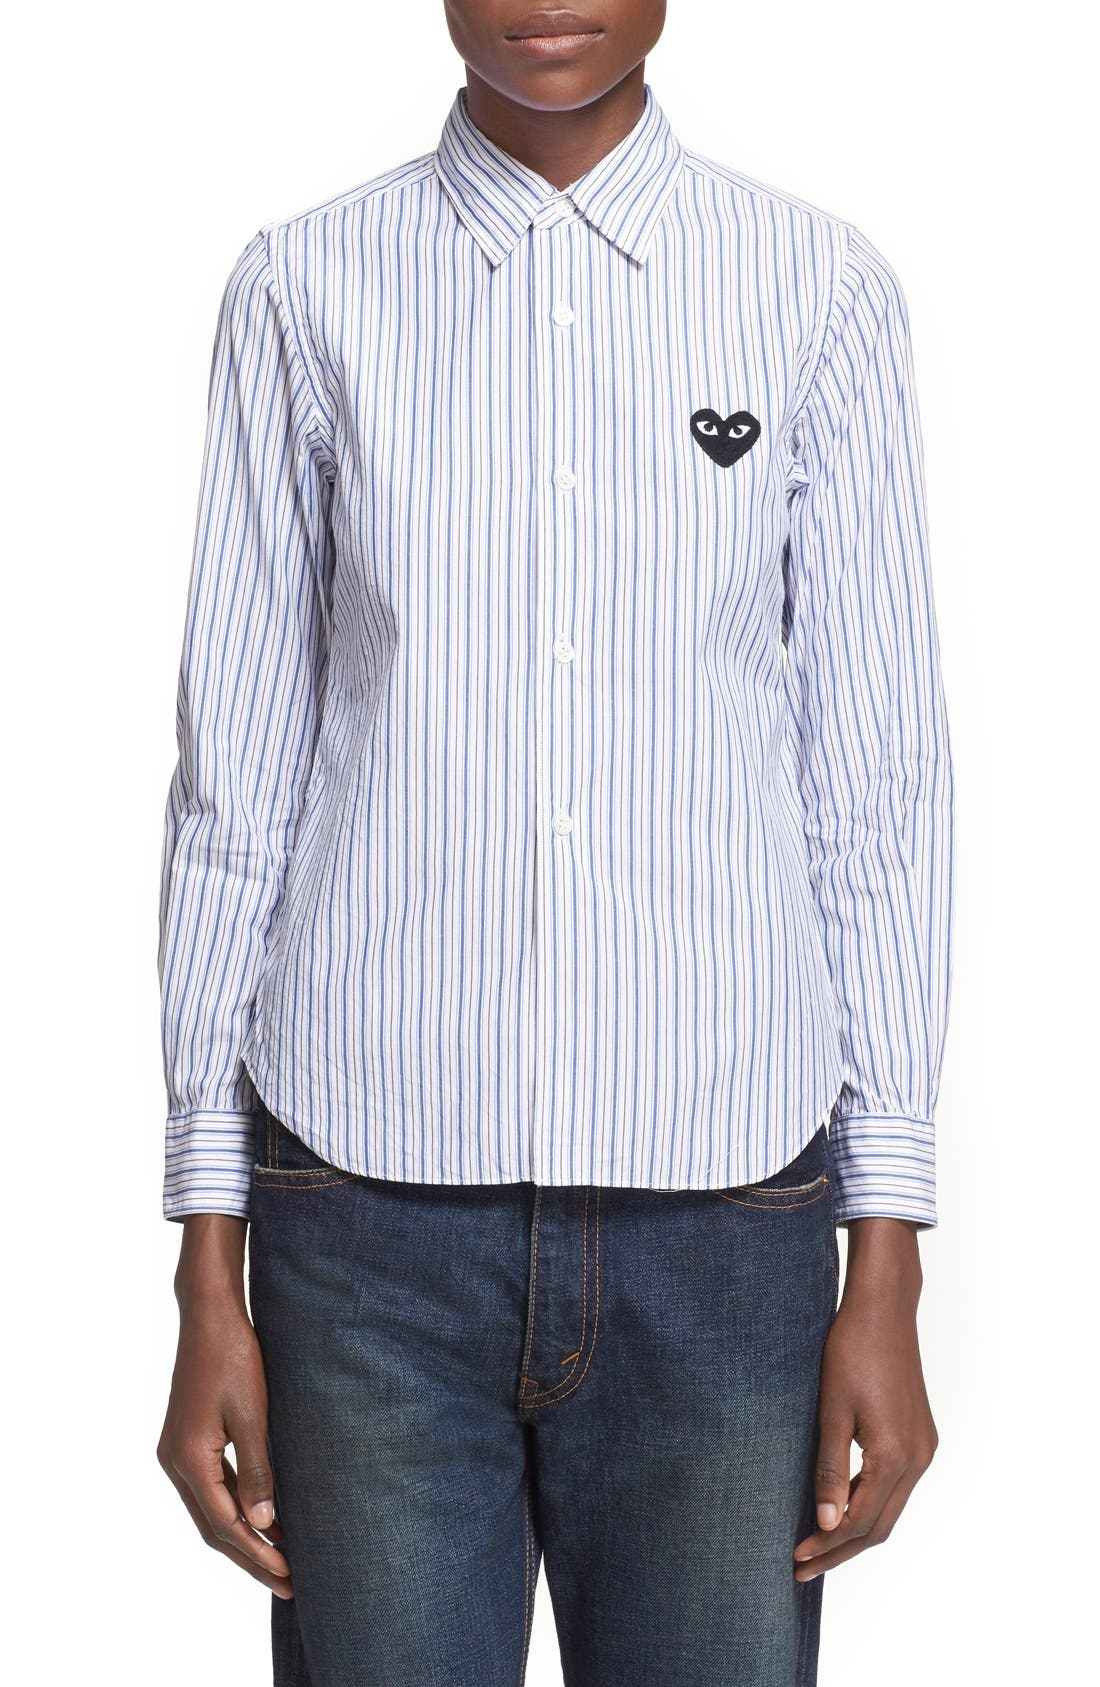 comme des garcons dress shirt